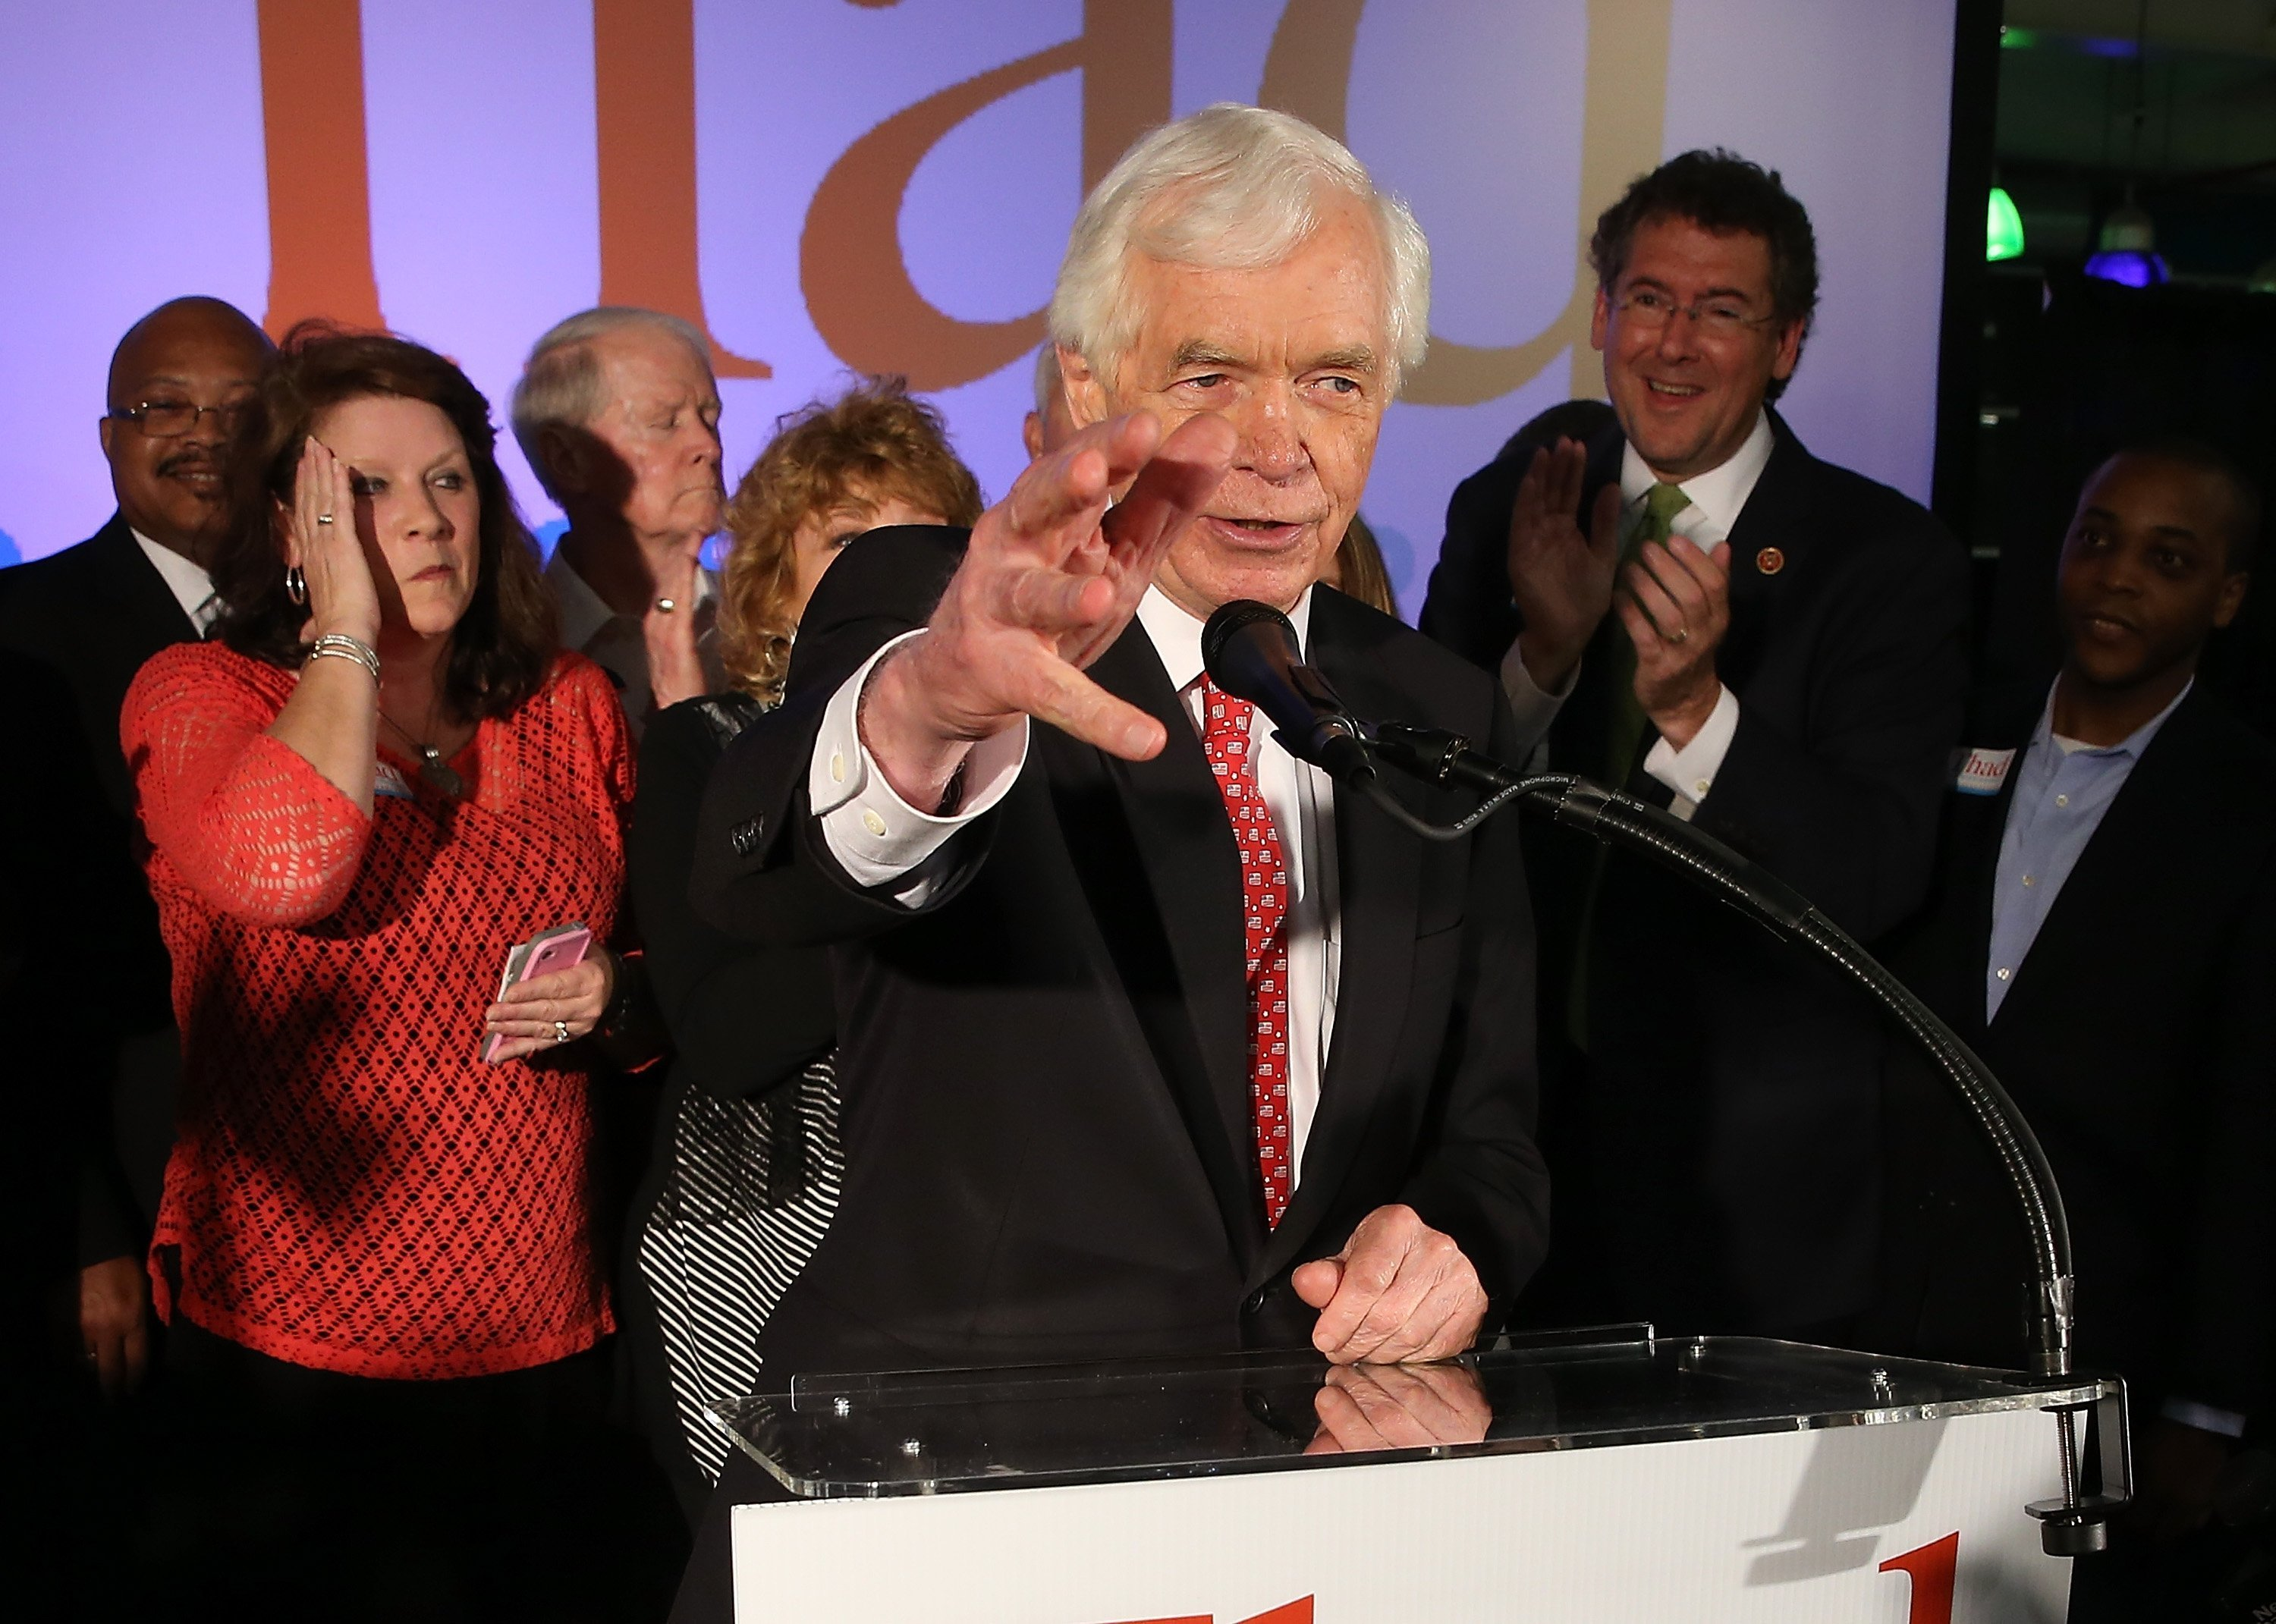 Mississippi Senator Thad Cochran announces he is stepping down